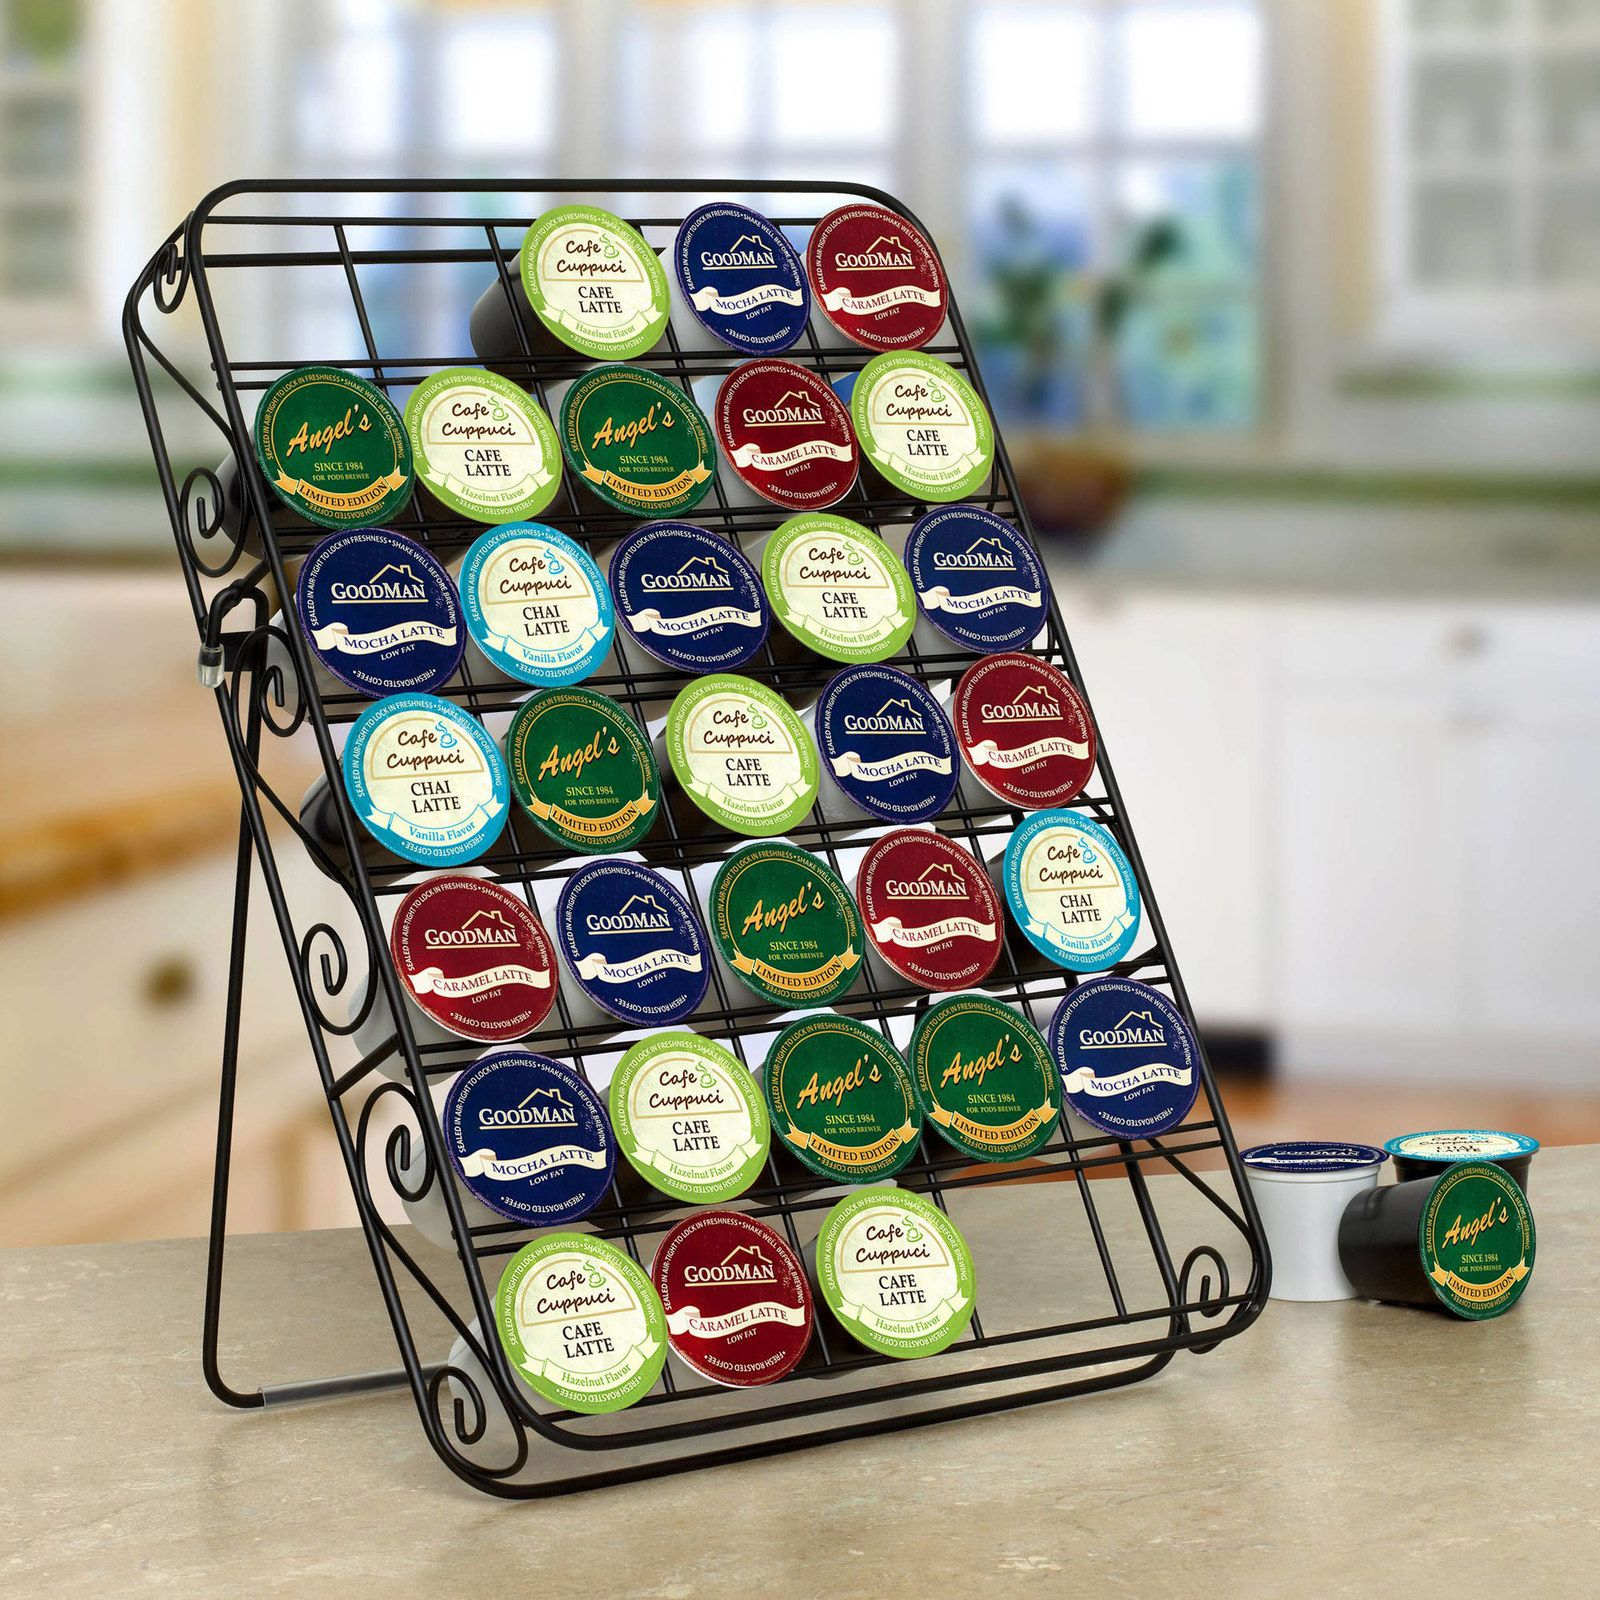 28 Things At Walmart To Organize Every Room In Your Home